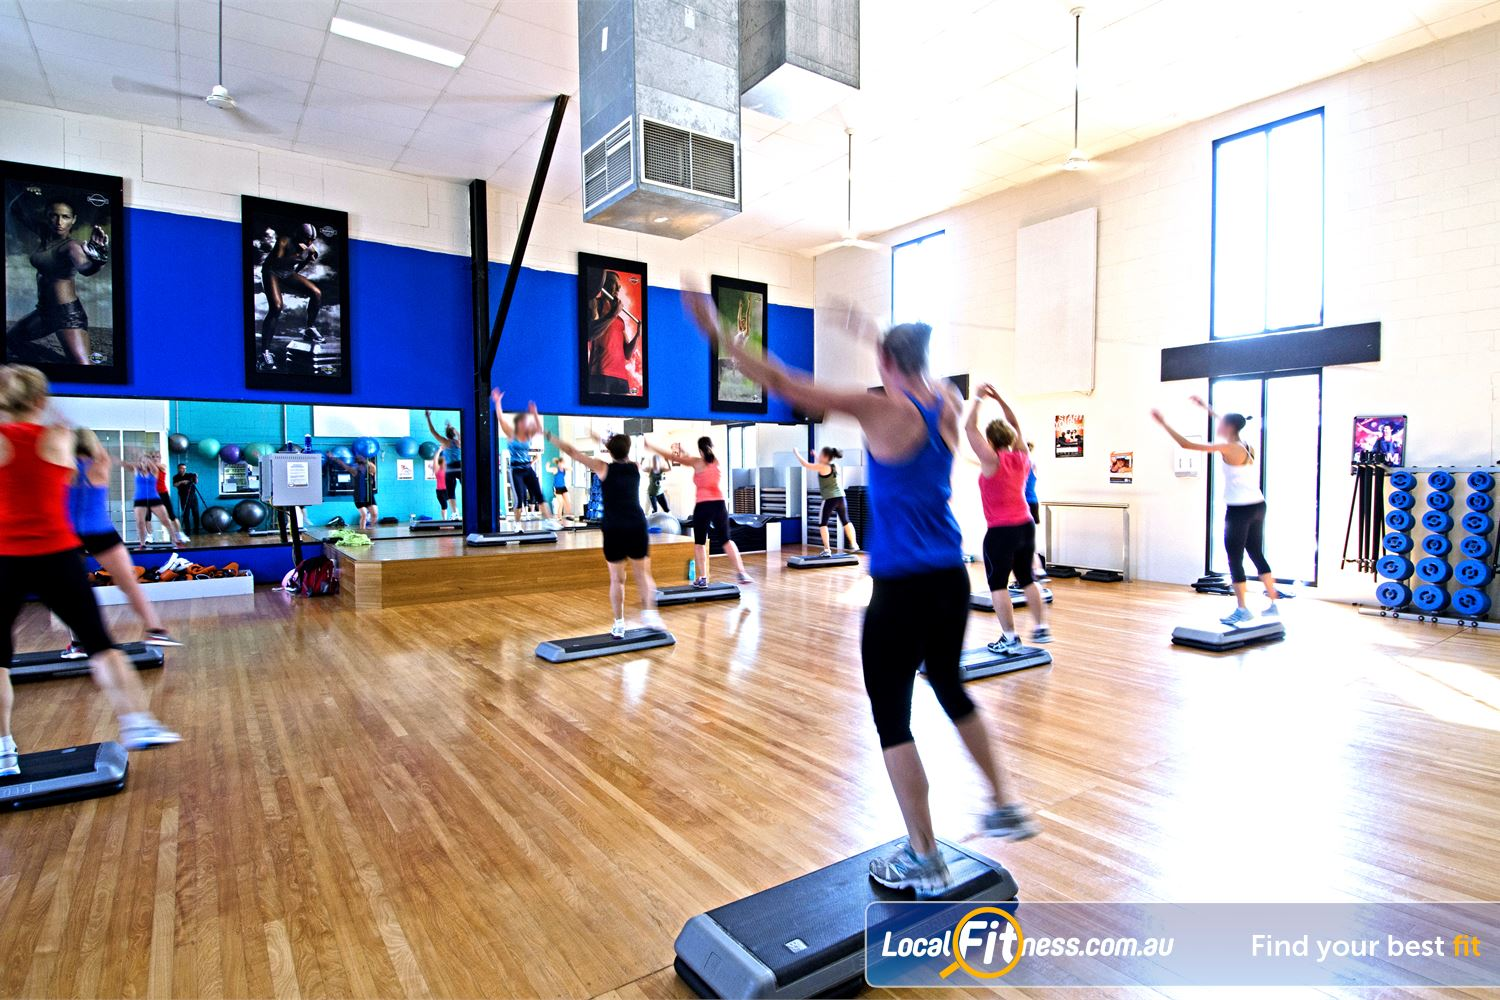 Goodlife Health Clubs Graceville Our inspiring instructors will lead a heart-pumping workout.